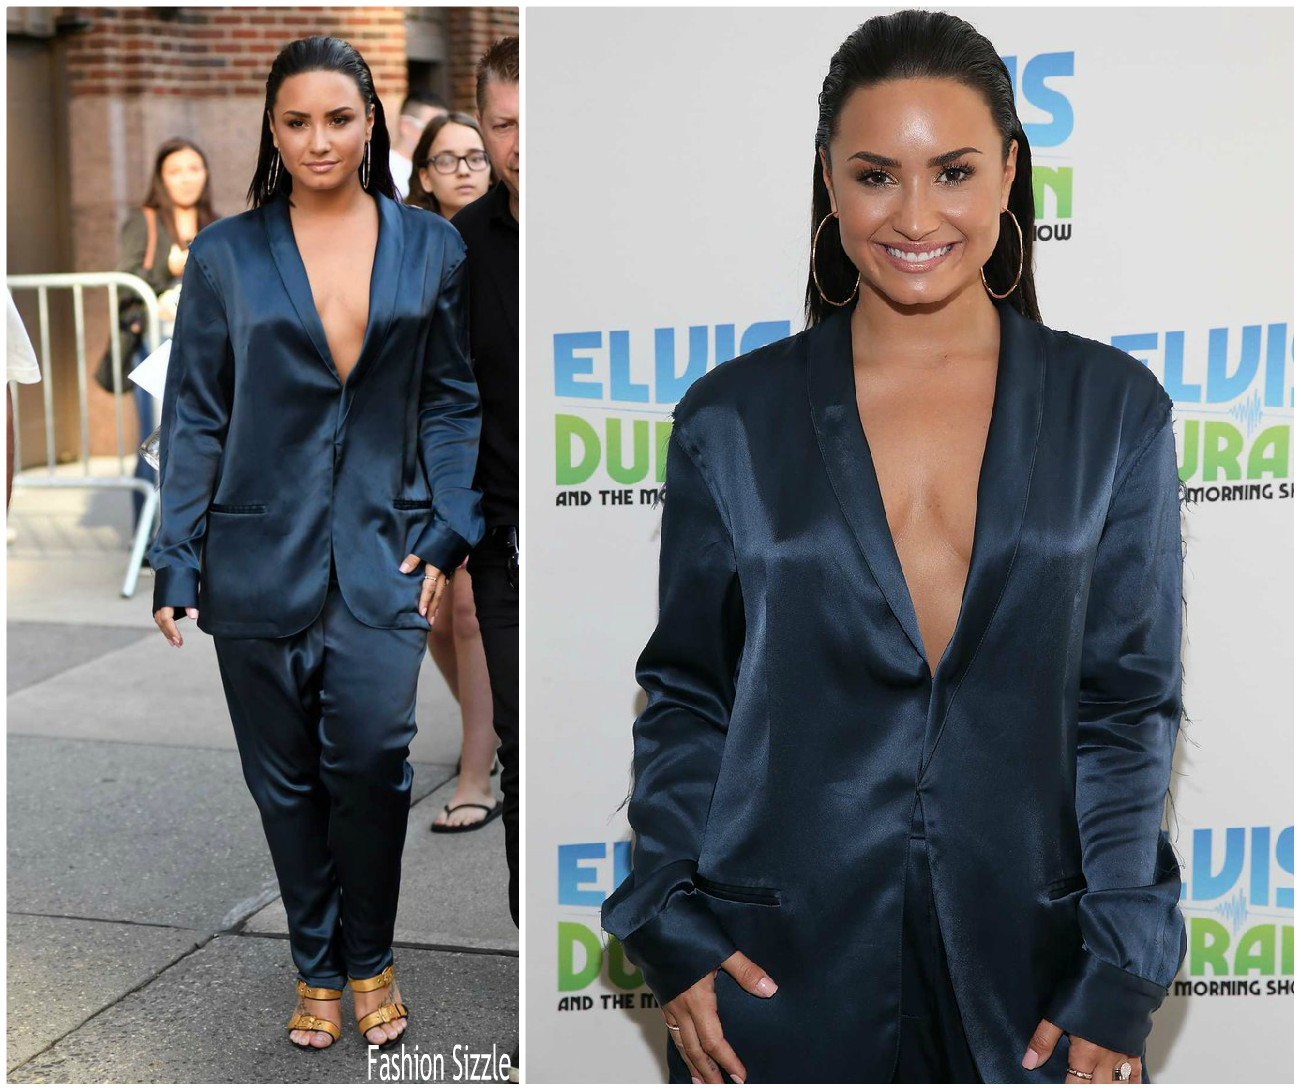 demi-lovato-in-baja-east-sirius-xm